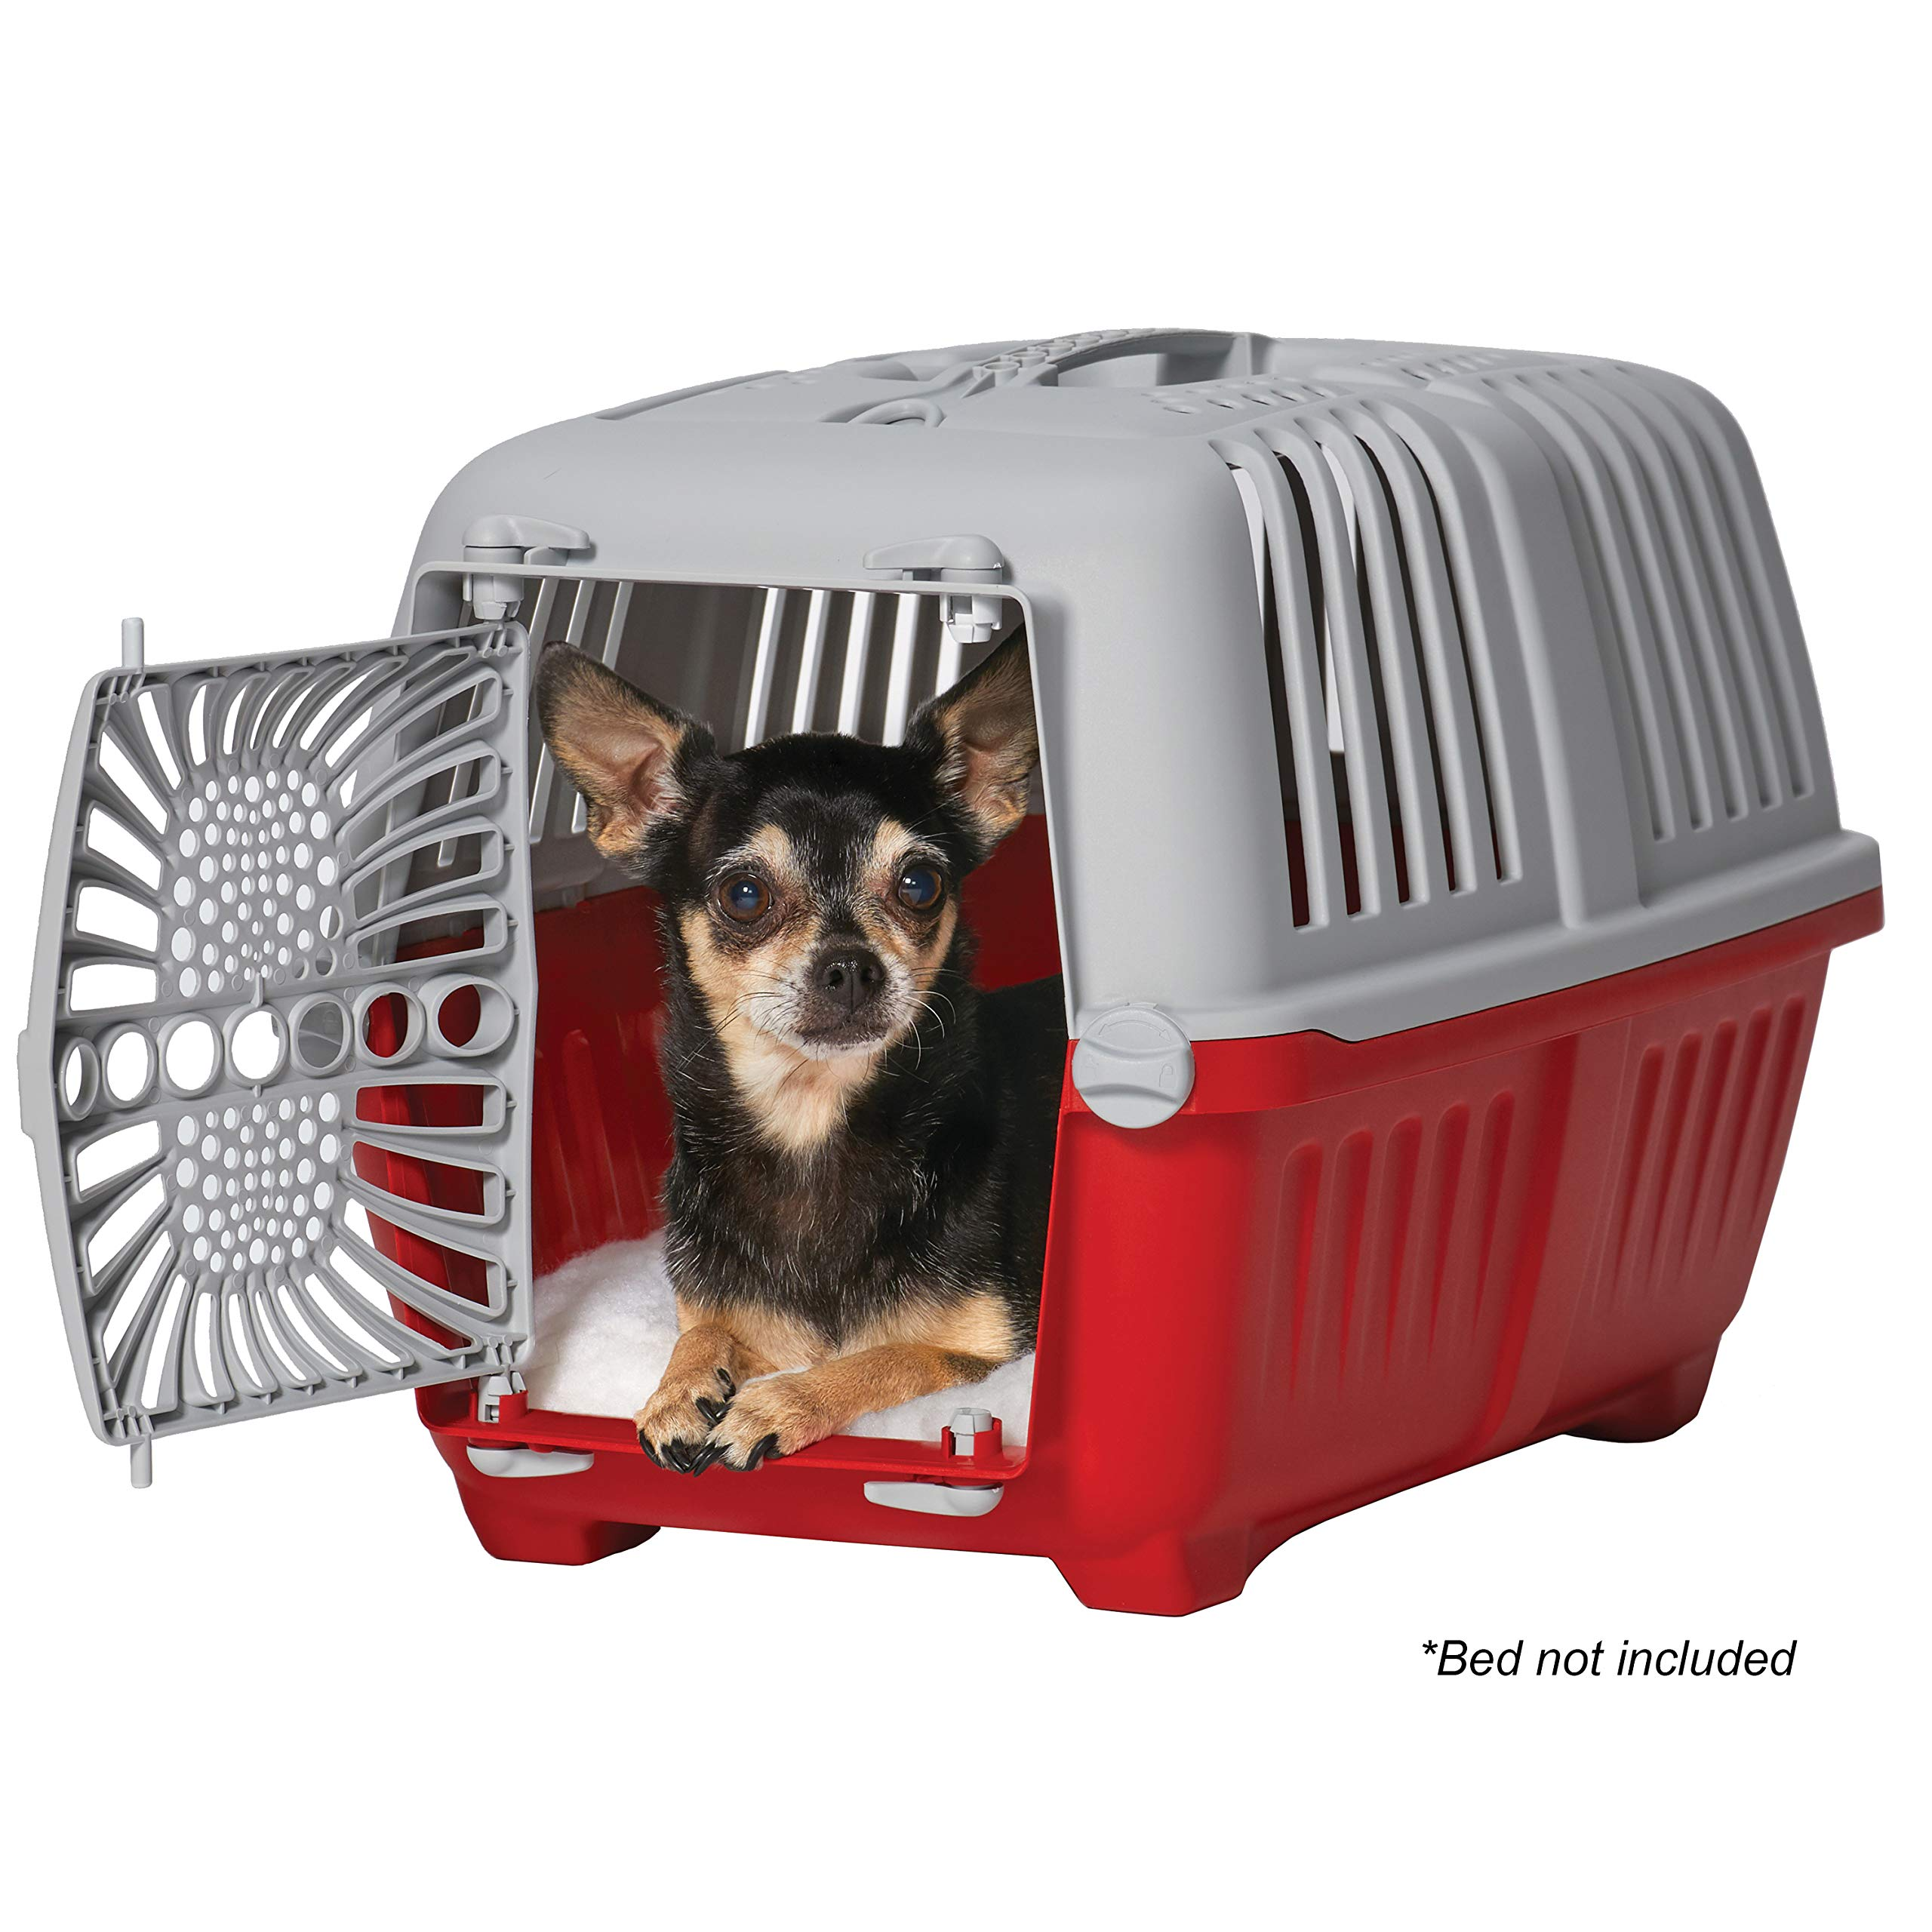 Midwest Spree Travel Carrier   Hard-Sided Pet Carriers Ideal for Extra-Small Dogs, Cats & Other Small Animals